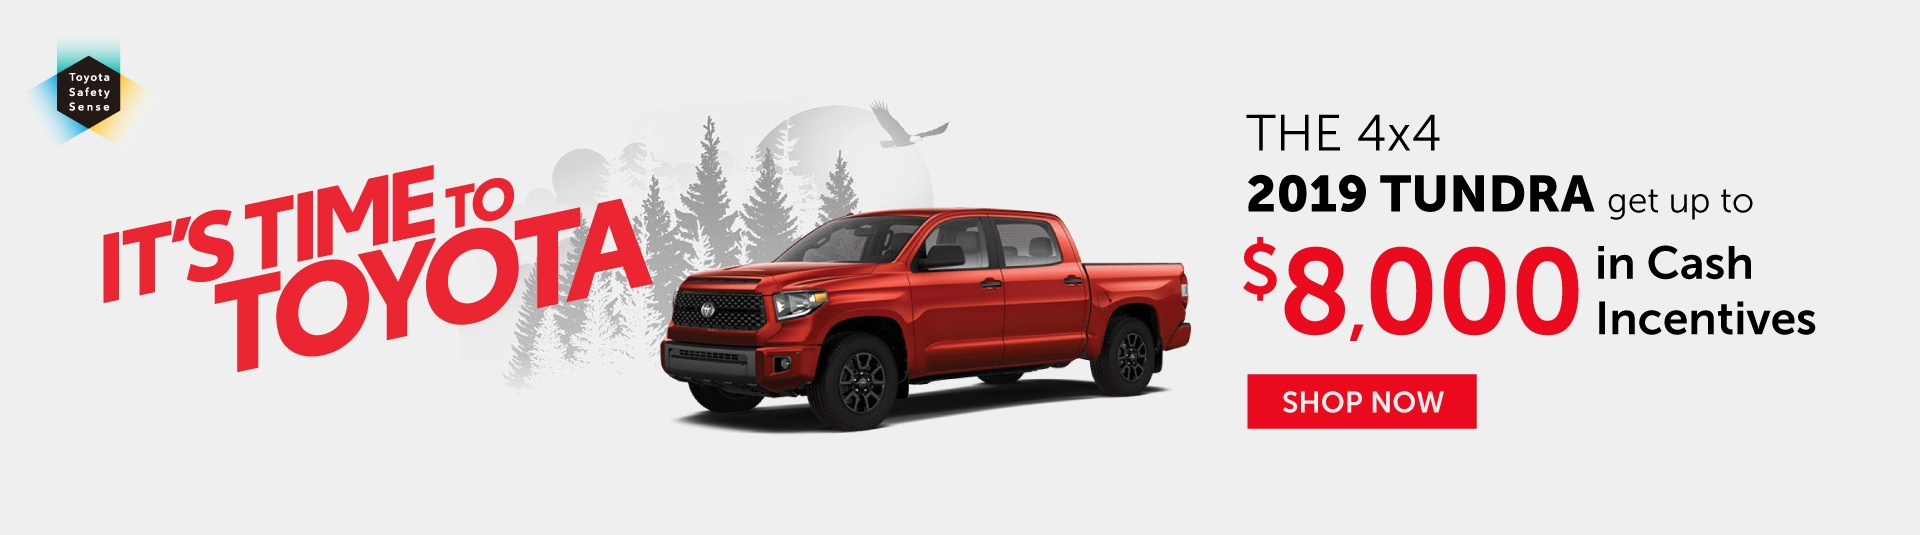 It's Time To Toyota - Tundra Offer